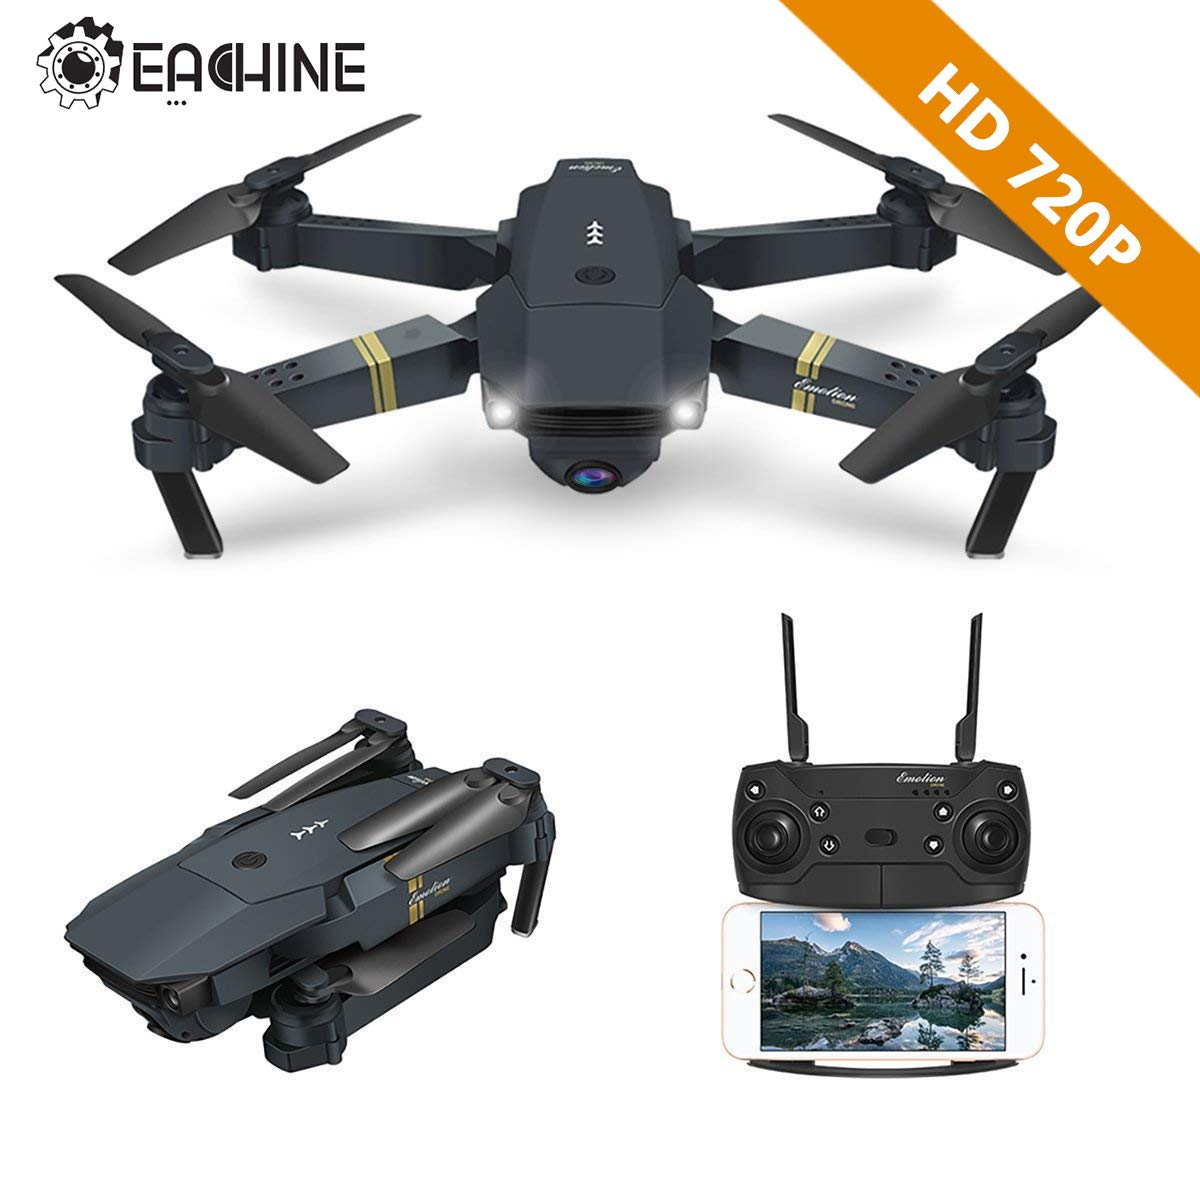 E58 Drone X Pro Foldable 2.4ghz Quadcopter Wifi 1080p Camera 4 Pcs Batteries Low Price Camera Drones